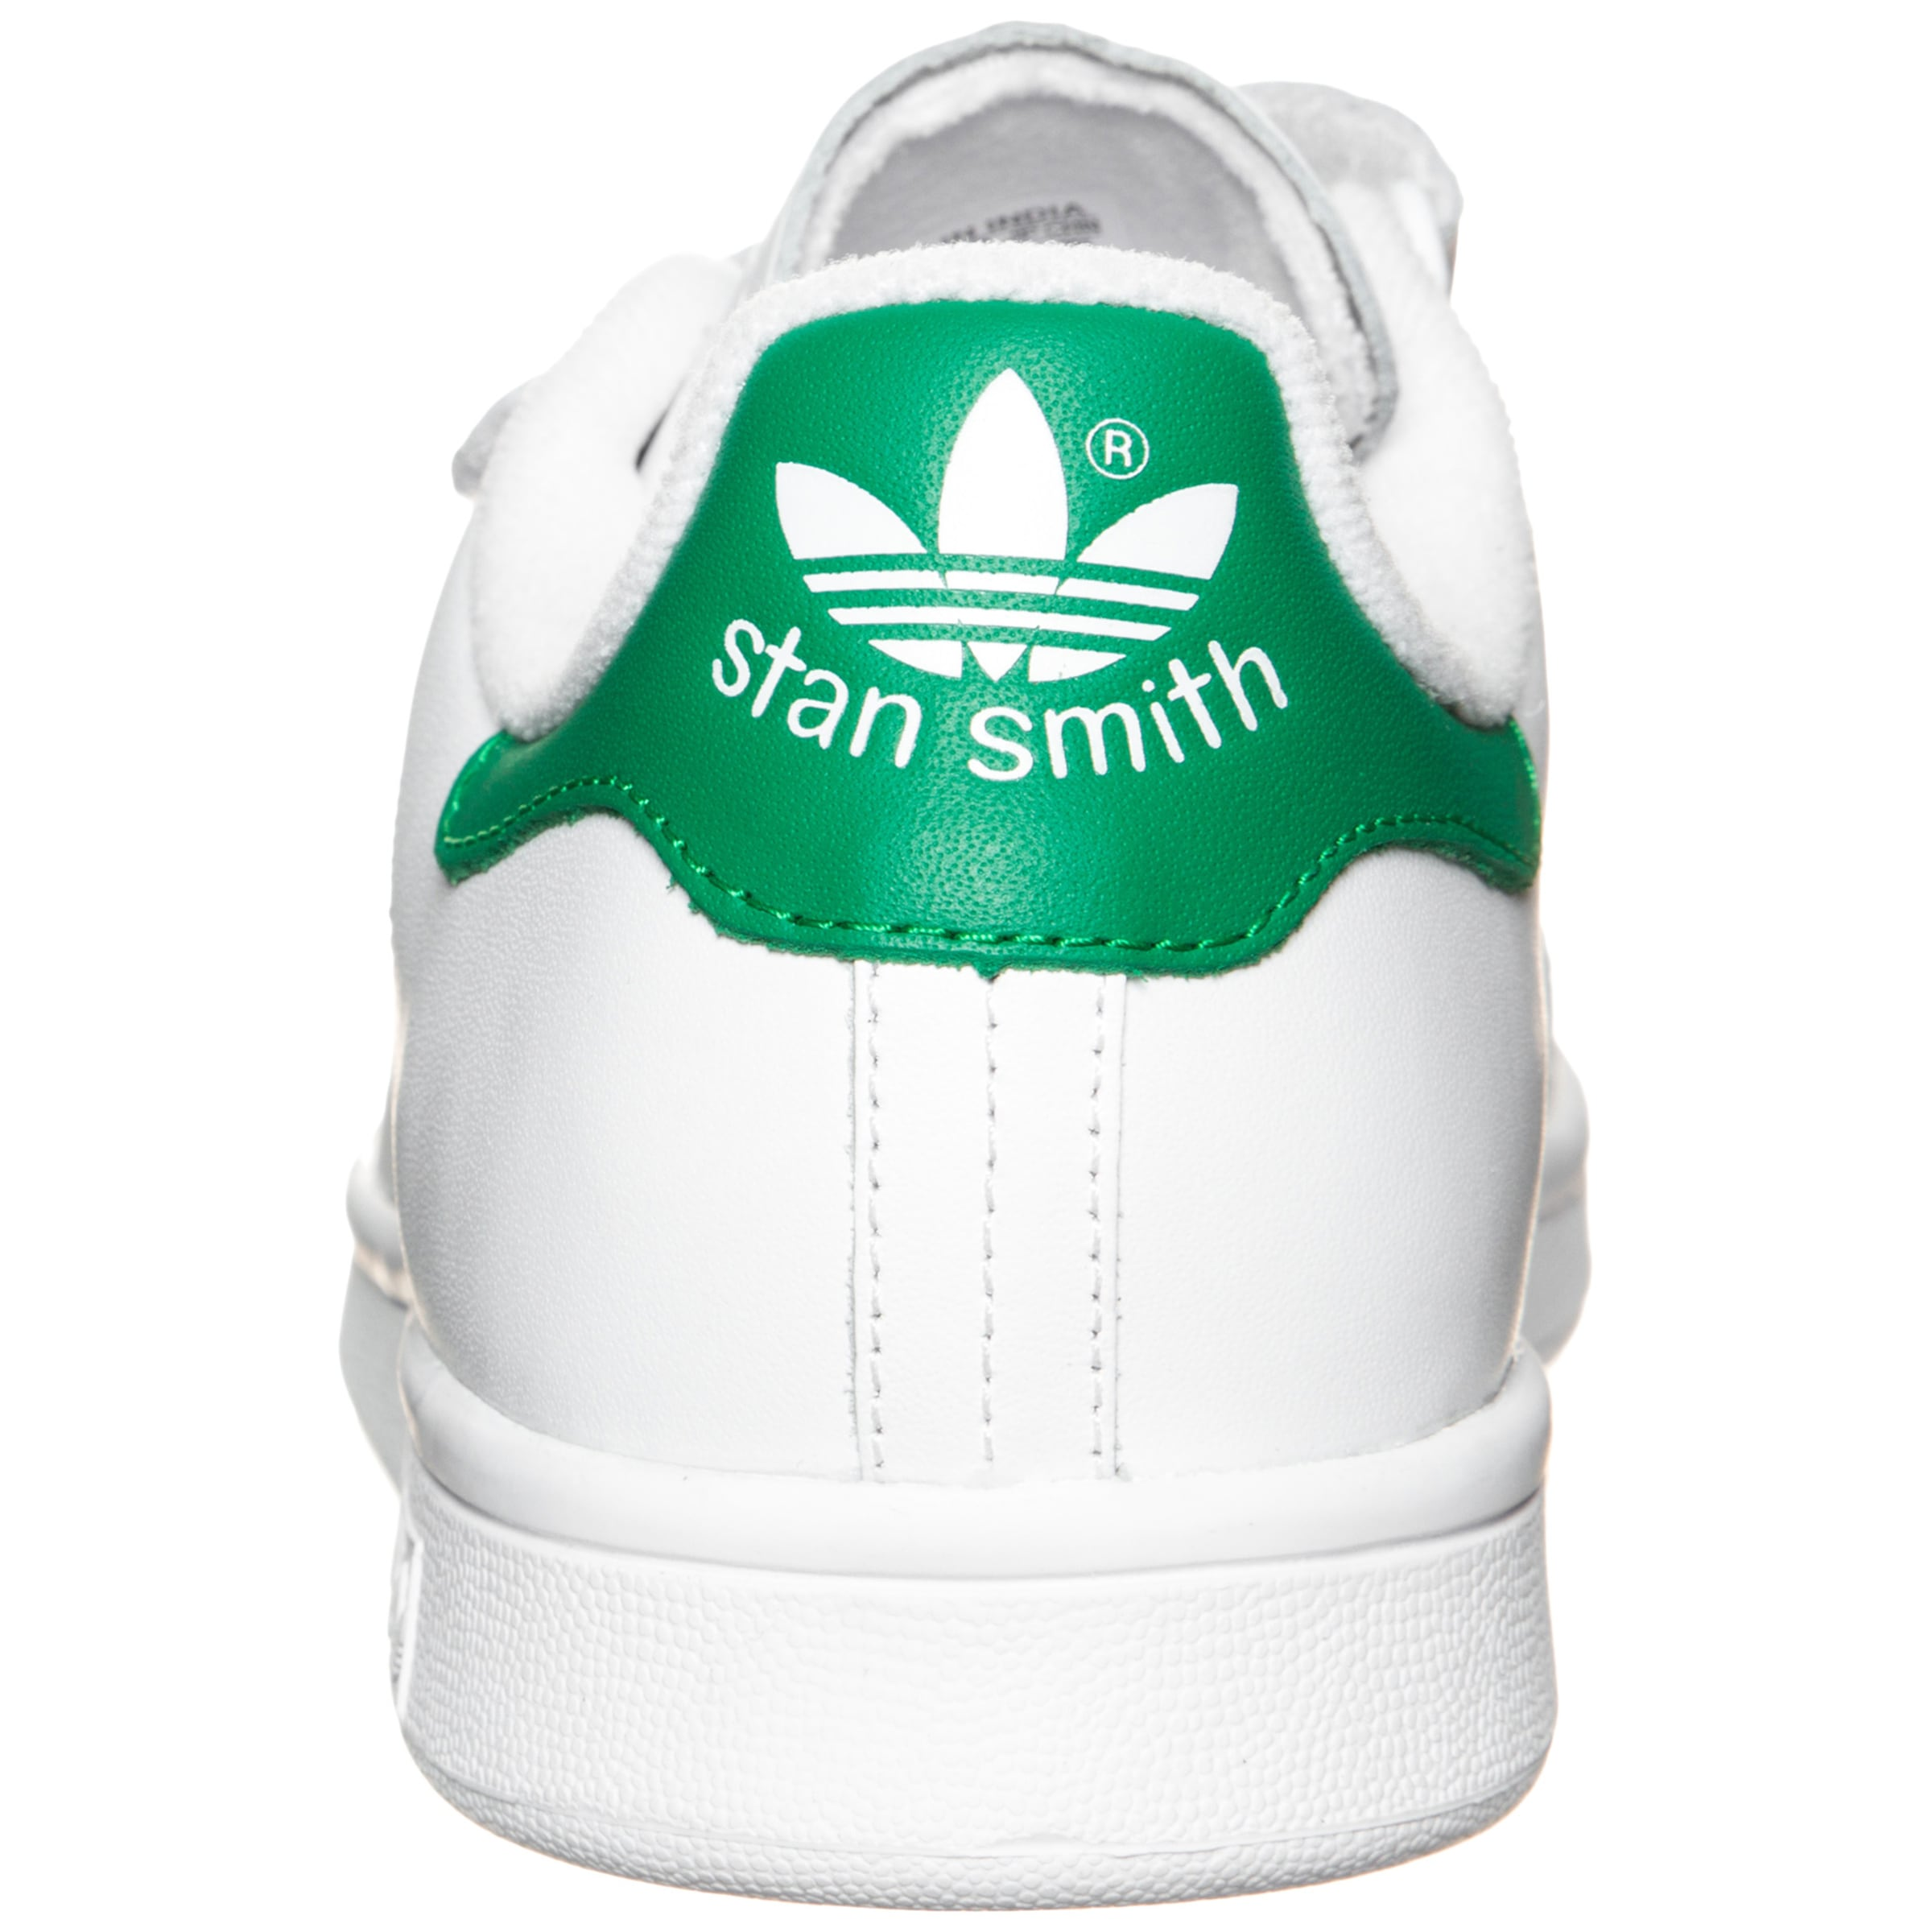 Adidas Cf' In GrünWeiß Originals 'stan Smith Sneaker reWCdxoB